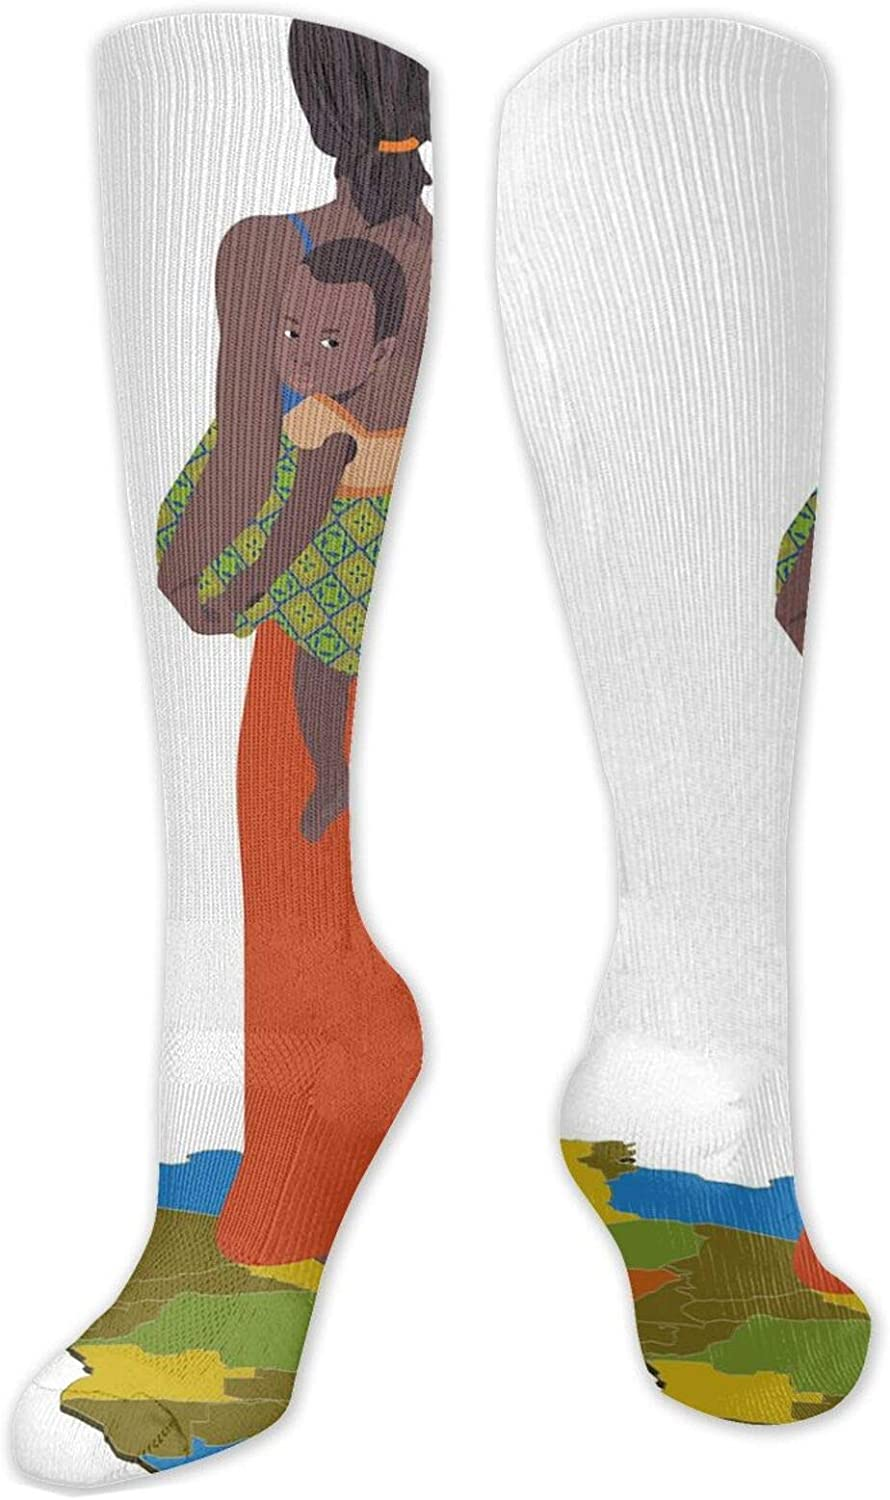 Compression High Socks-Mother Carrying Baby Girl On Her Back Africa Country Culture Continent Map,Socks Women and Men - Best for Running, Athletic,Hiking,Travel,Flight